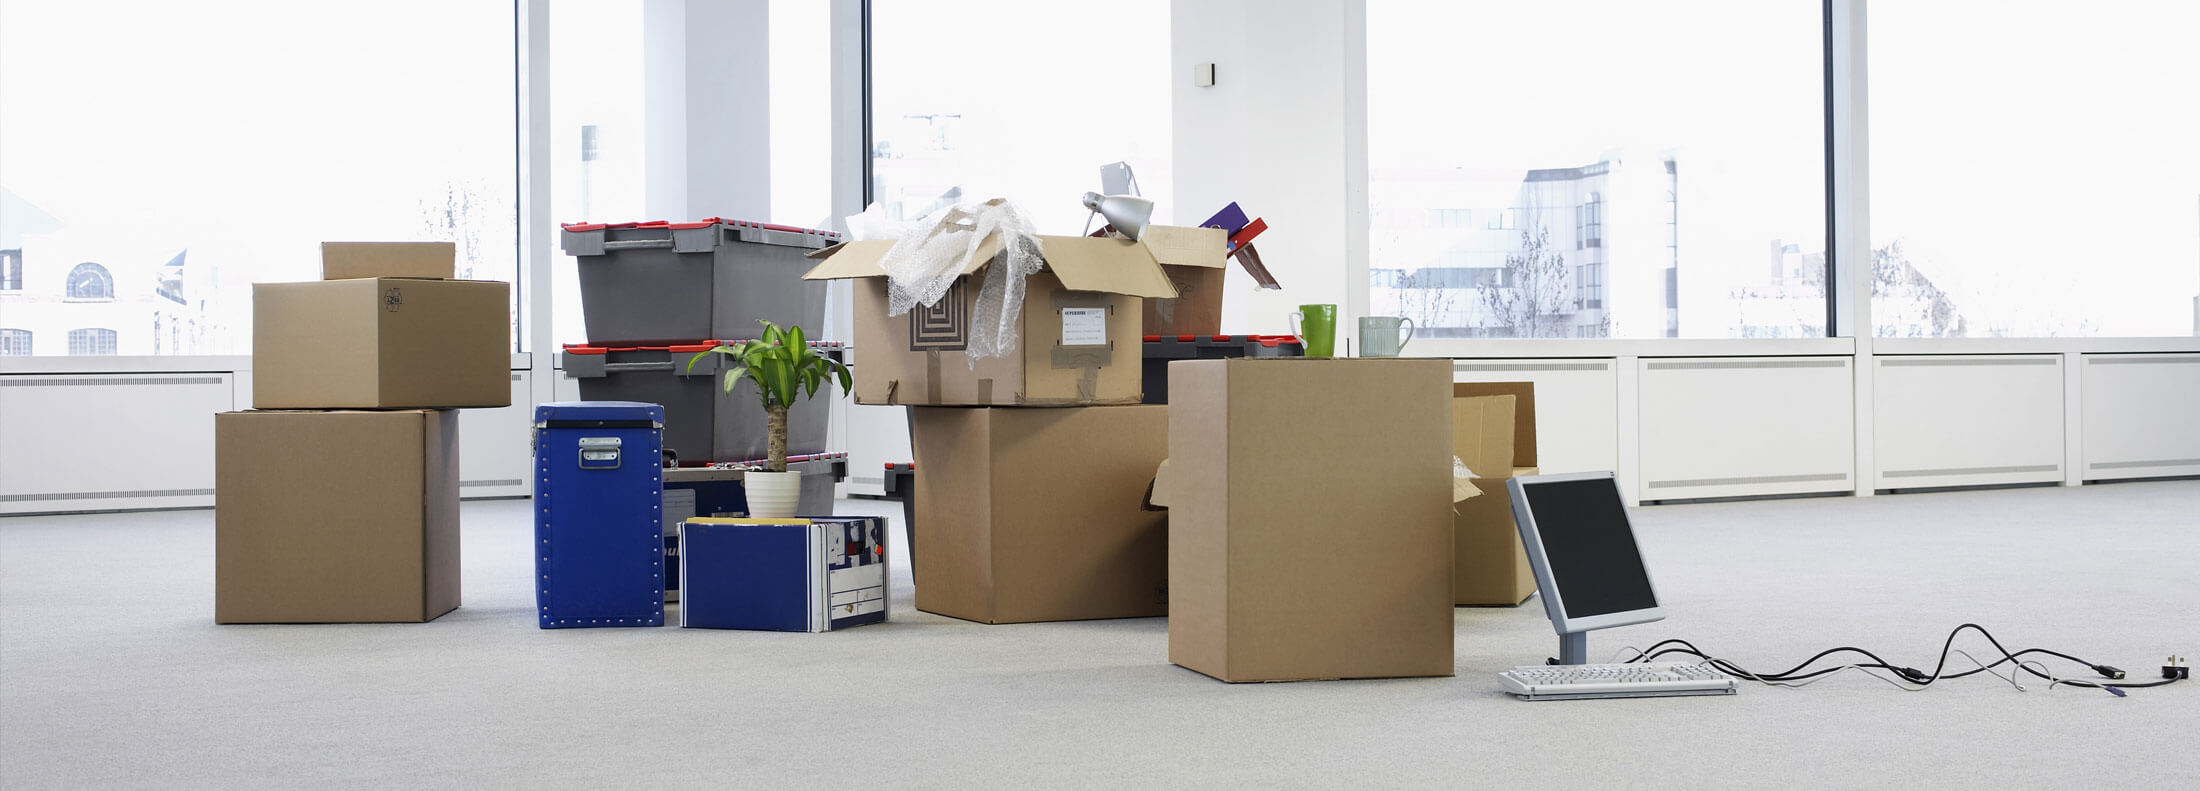 Moving Service | Removal Company | Office Relocation | Storage Facilities | Packing Supplies